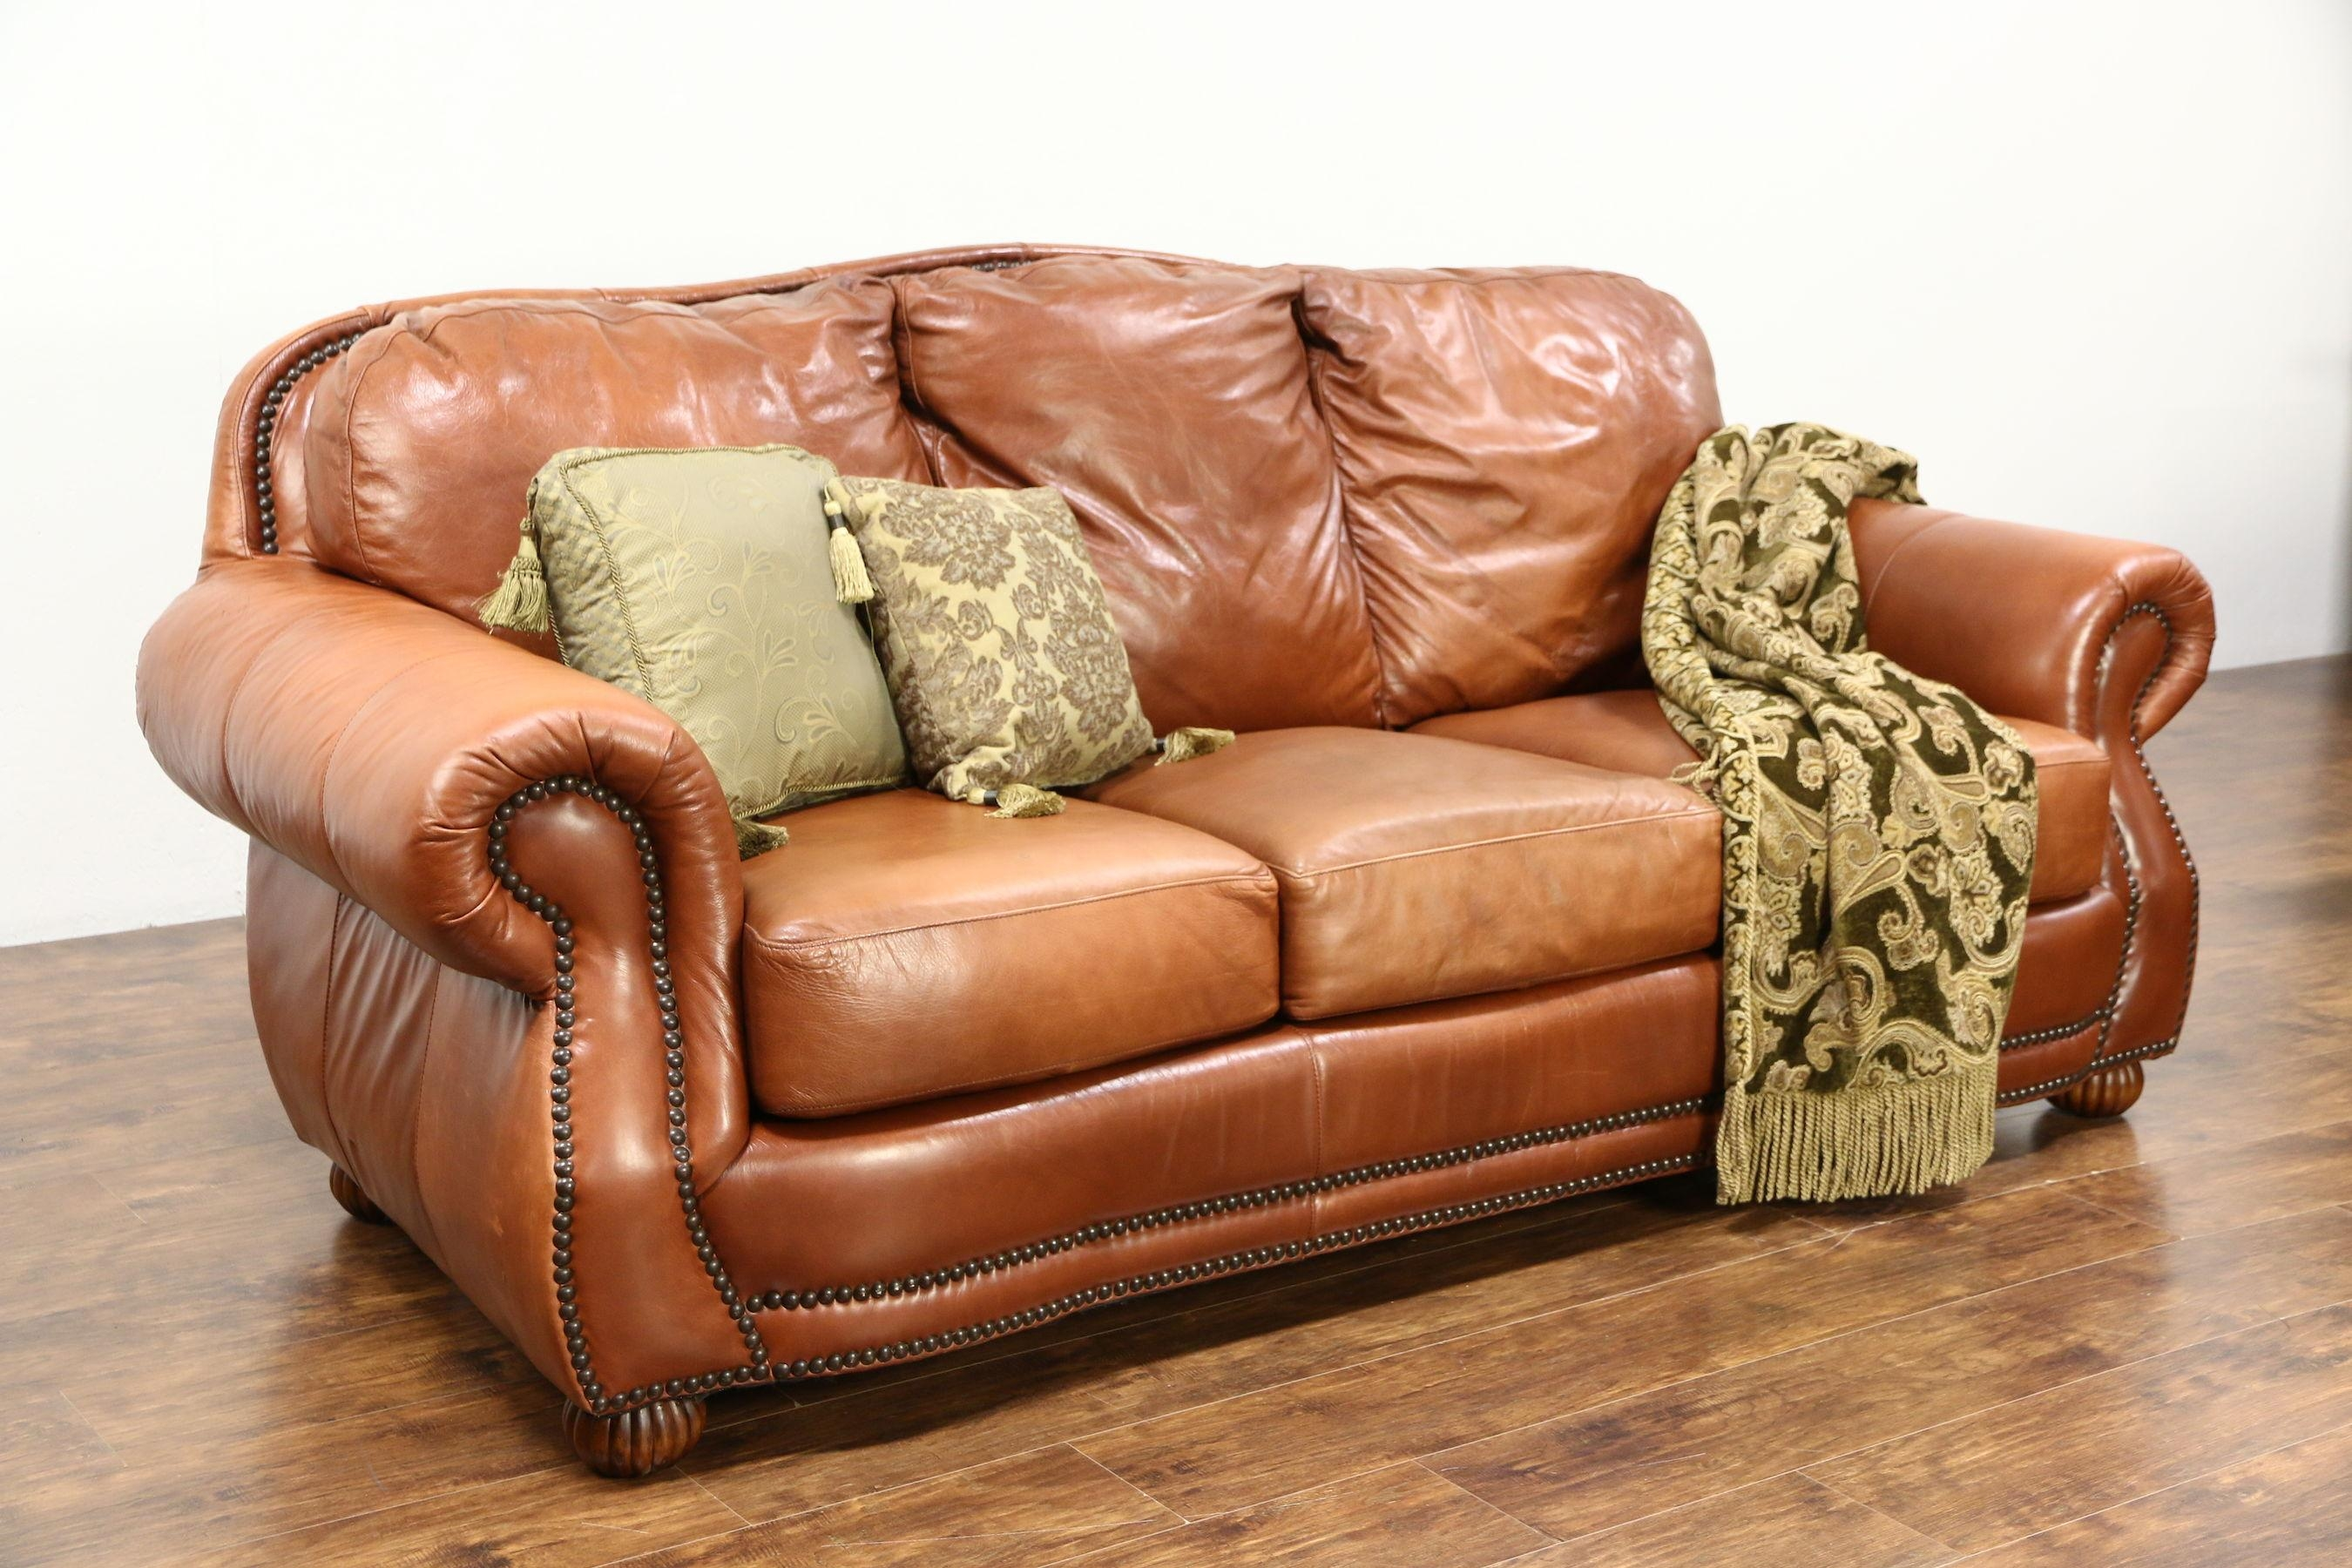 Sofas : Marvelous Vintage Leather Sofa Black Leather Sofa Set Throughout Vintage Leather Sectional Sofas (Image 18 of 20)